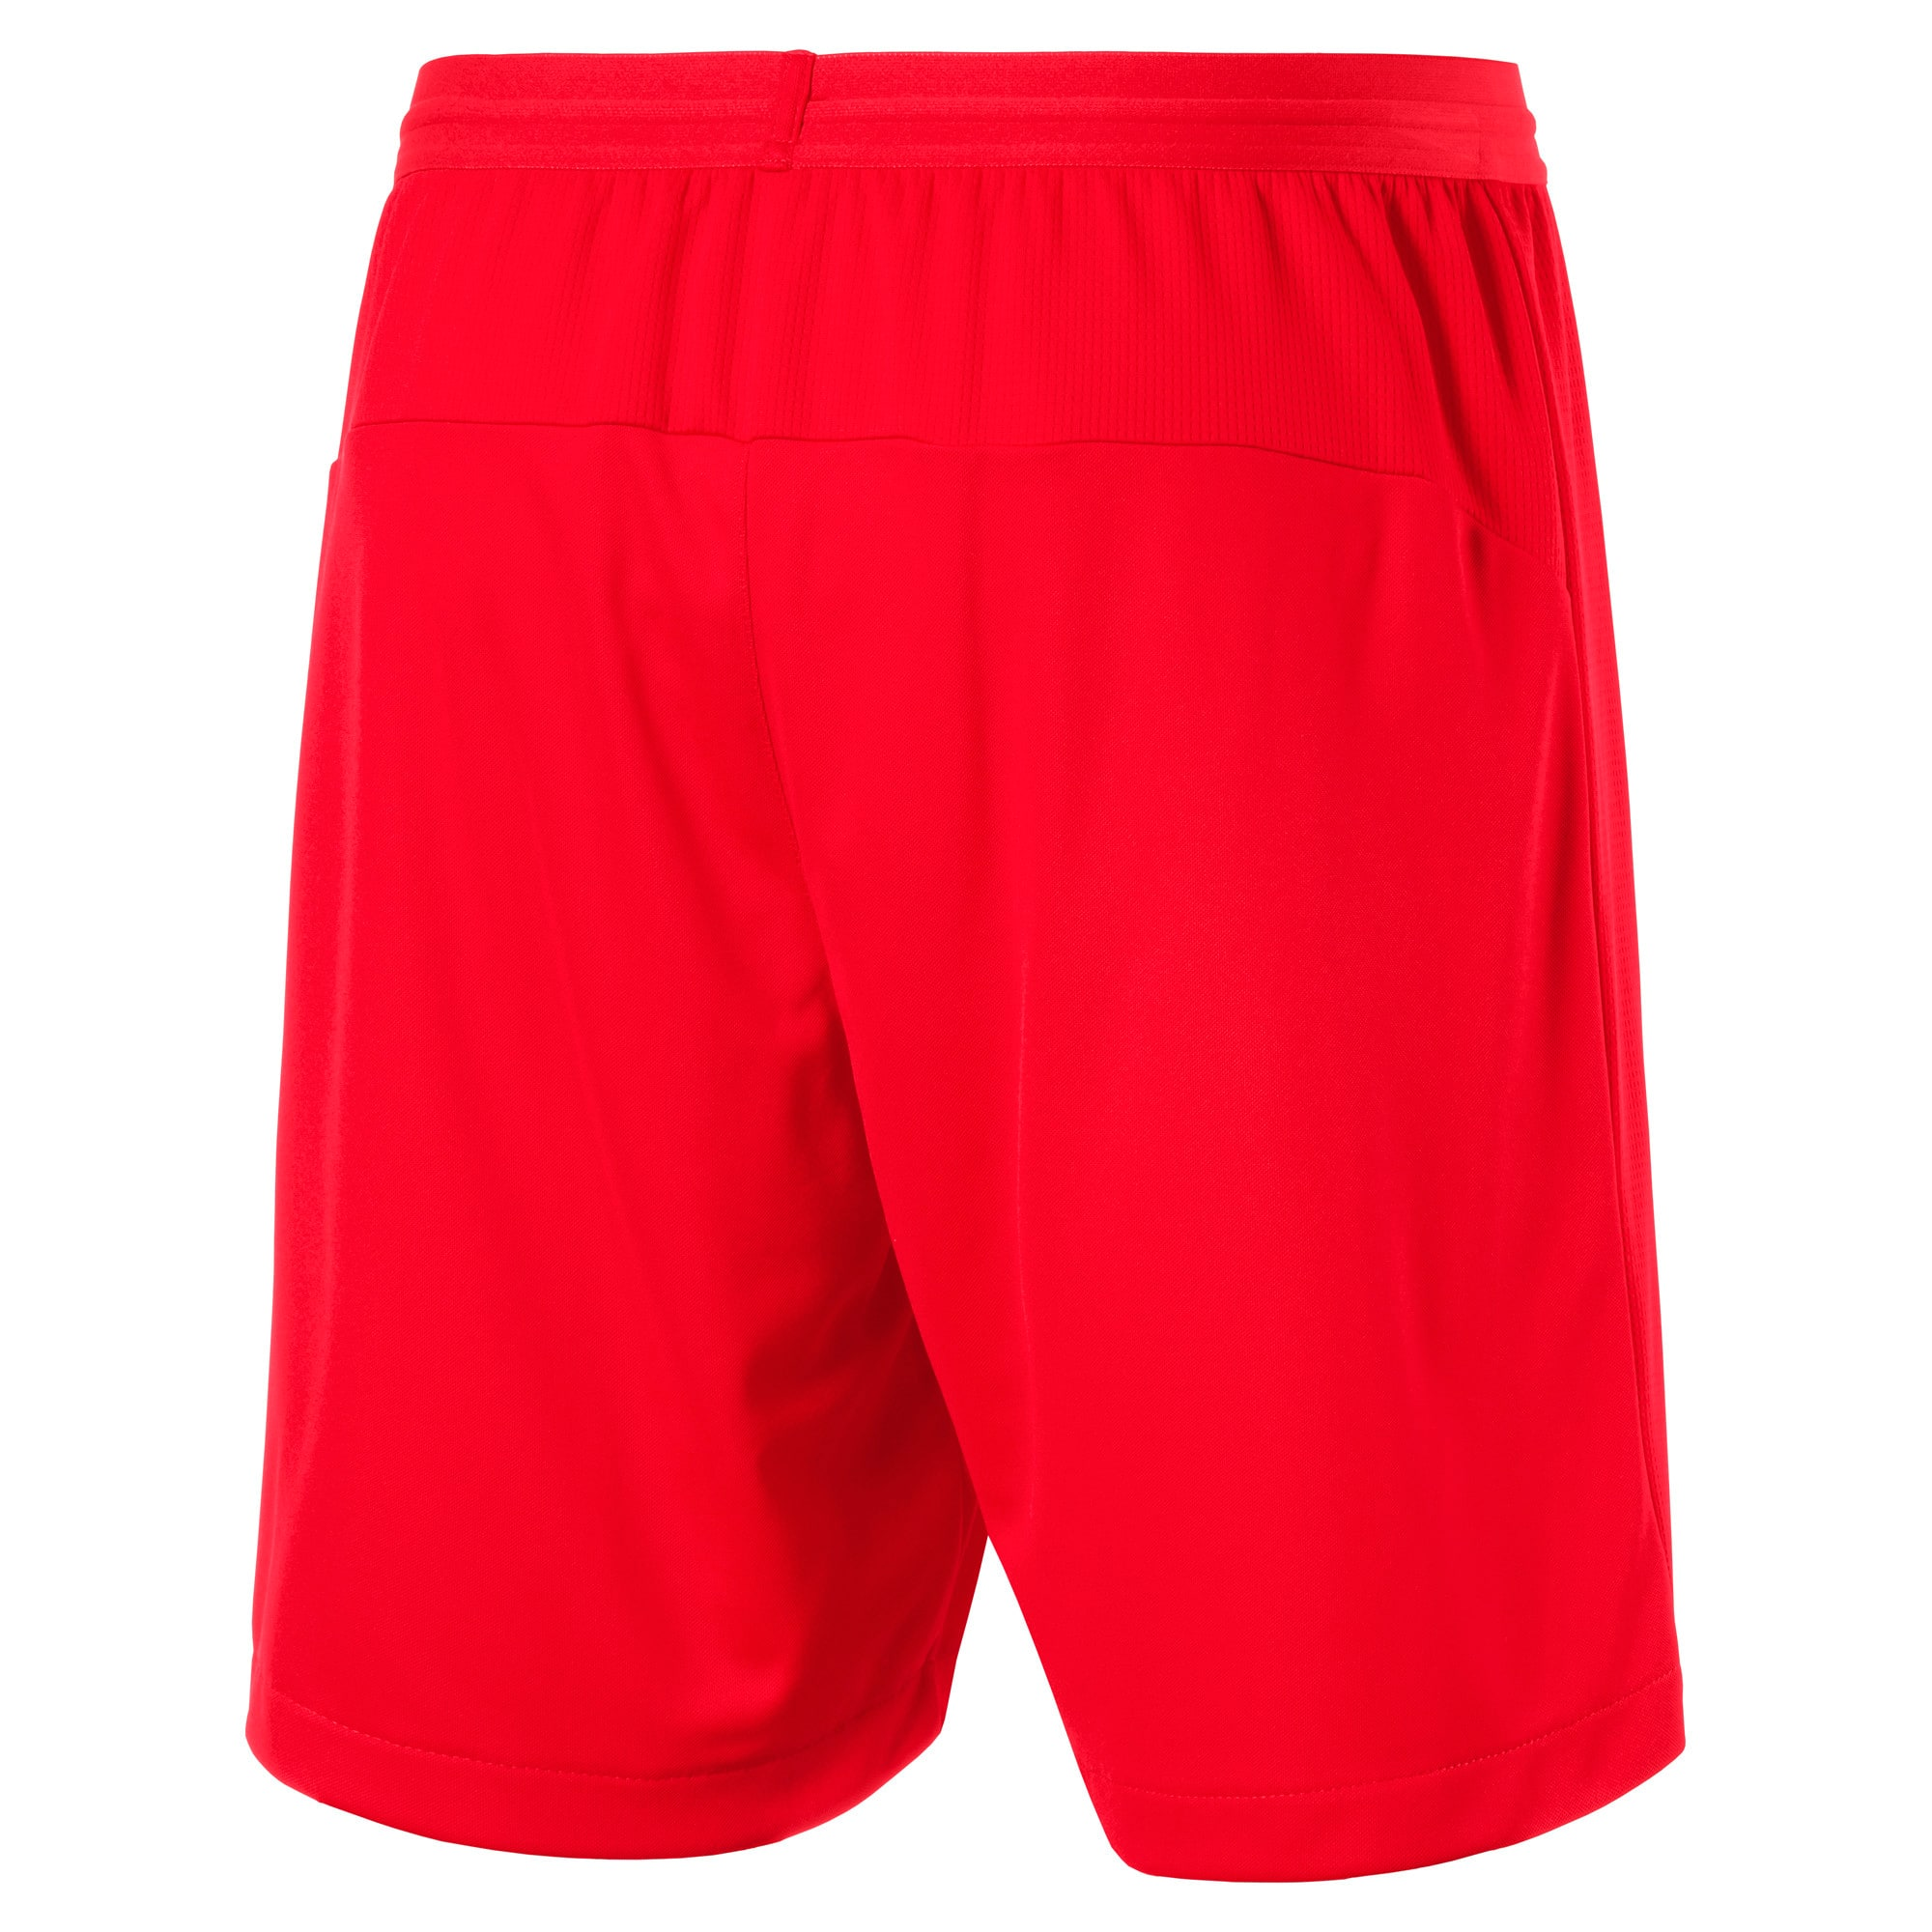 Thumbnail 3 of Switzerland Replica Shorts, Puma Red, medium